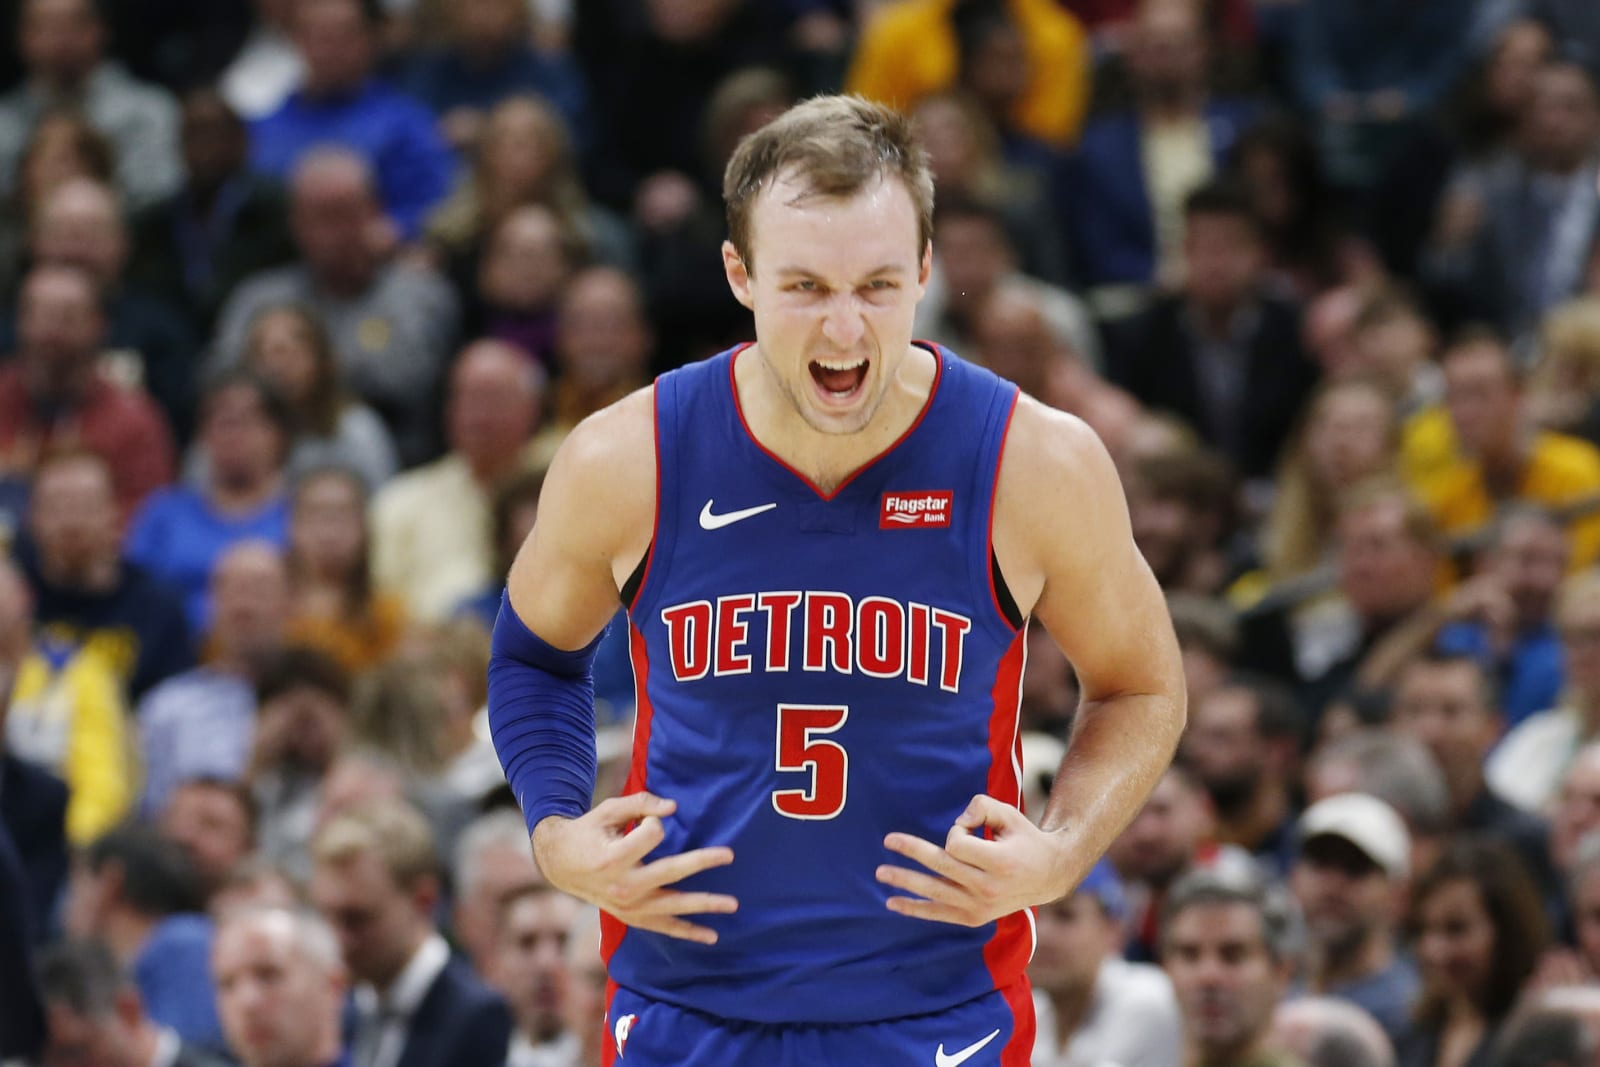 Detroit Pistons guard Luke Kennard